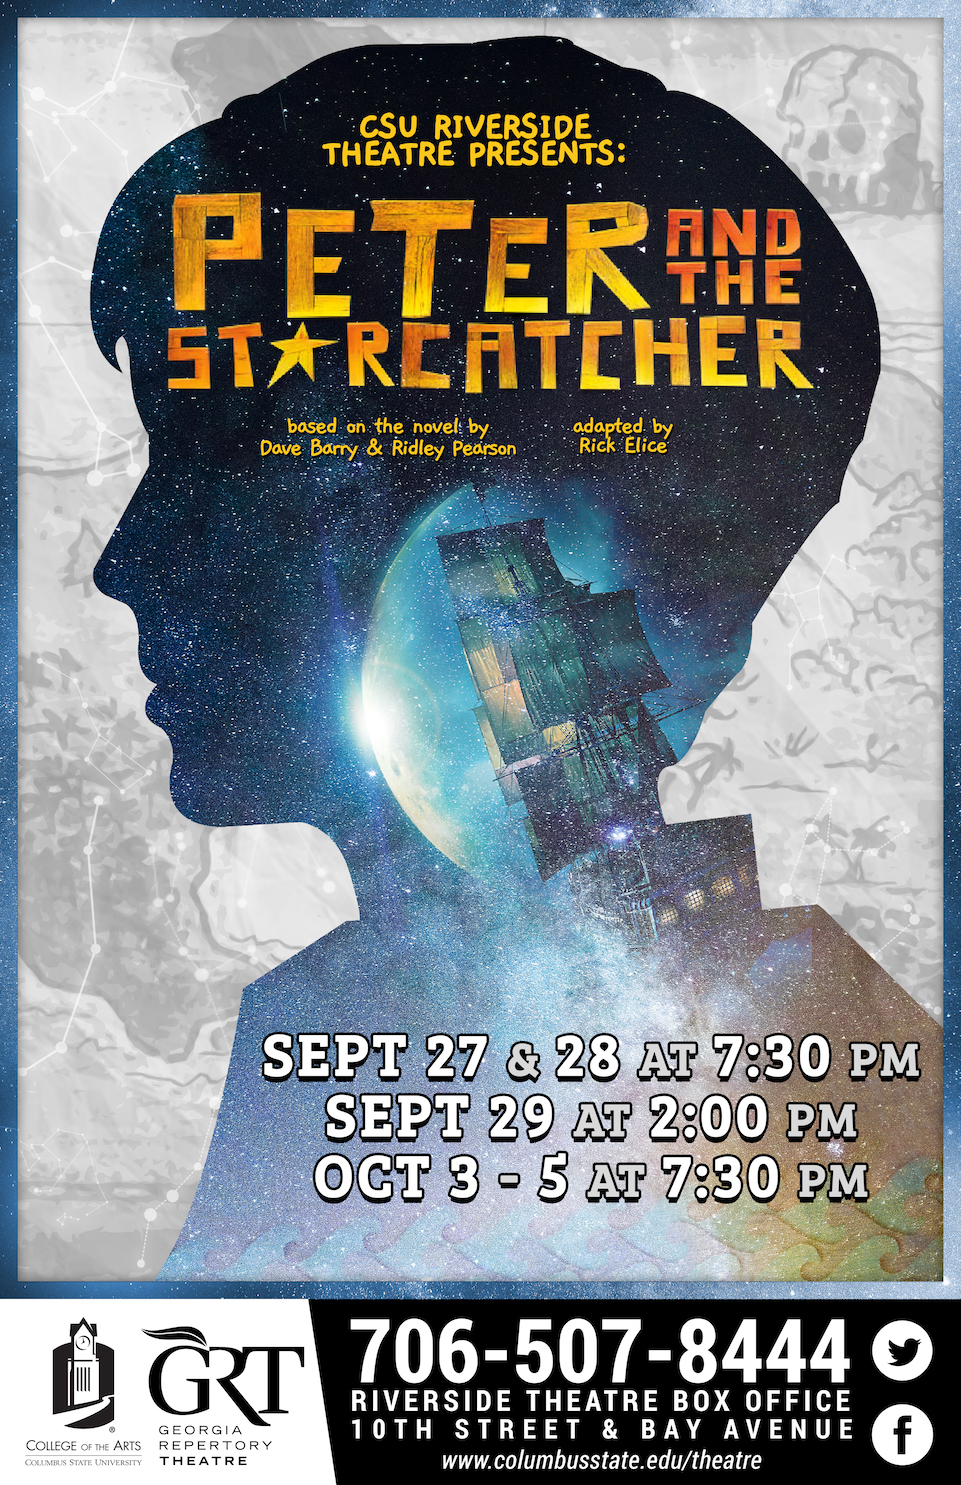 CSU Theatre: Peter and the Starcatcher